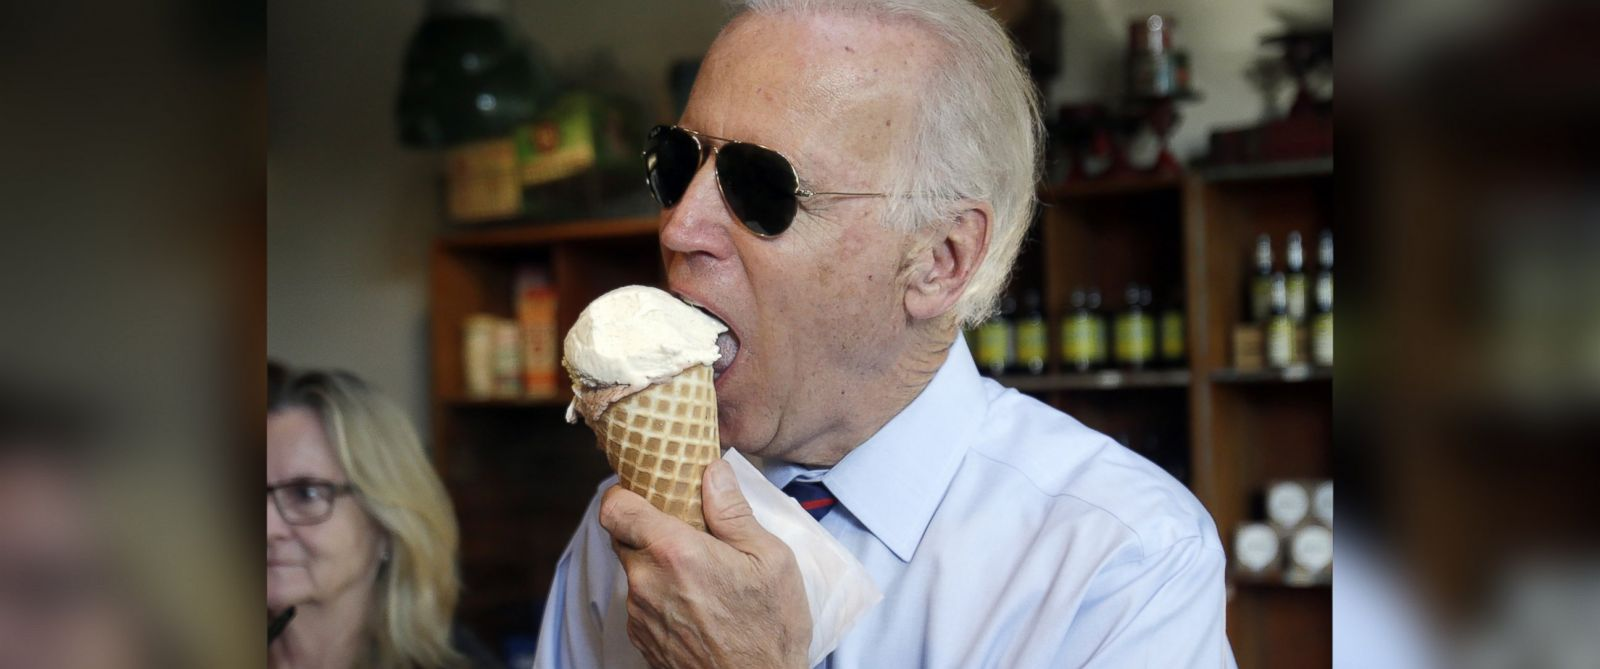 PHOTO: Vice President Joe Biden enjoys an ice cream cone after a campaign rally for Oregon U.S. Sen. Jeff Merkley in Portland, Ore., Oct. 8, 2014.